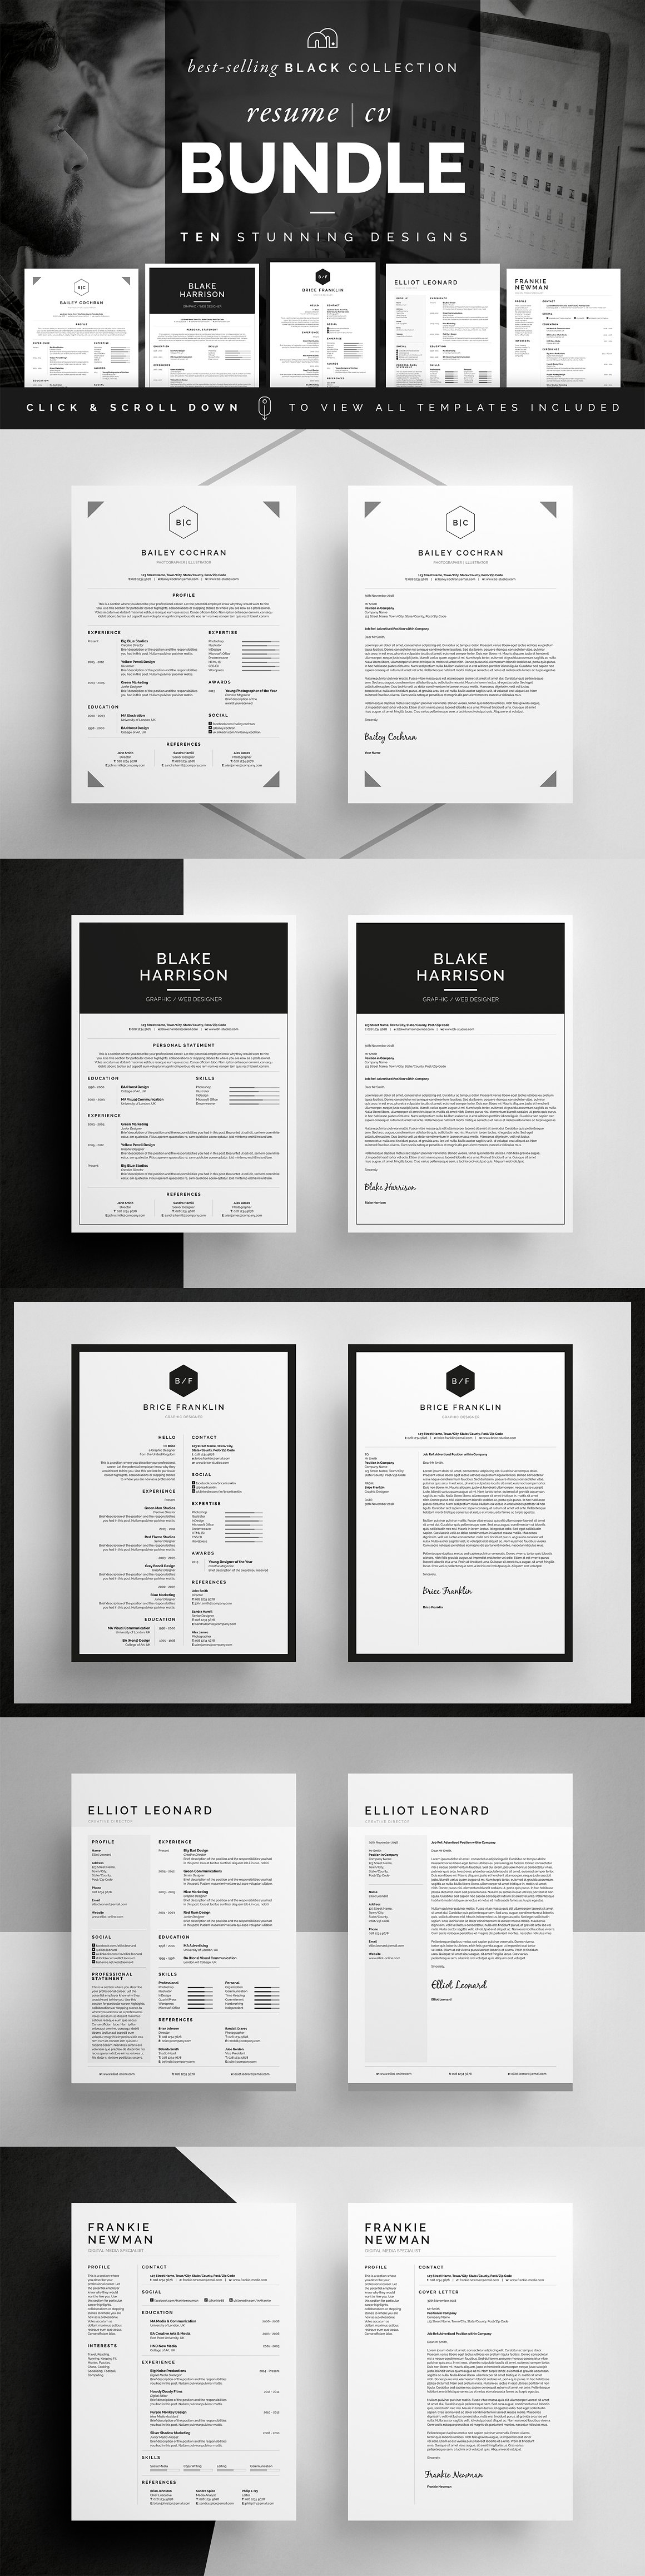 resume cv bundle black collection words create a resume and professional resume cv cover letter business card templates bundle create